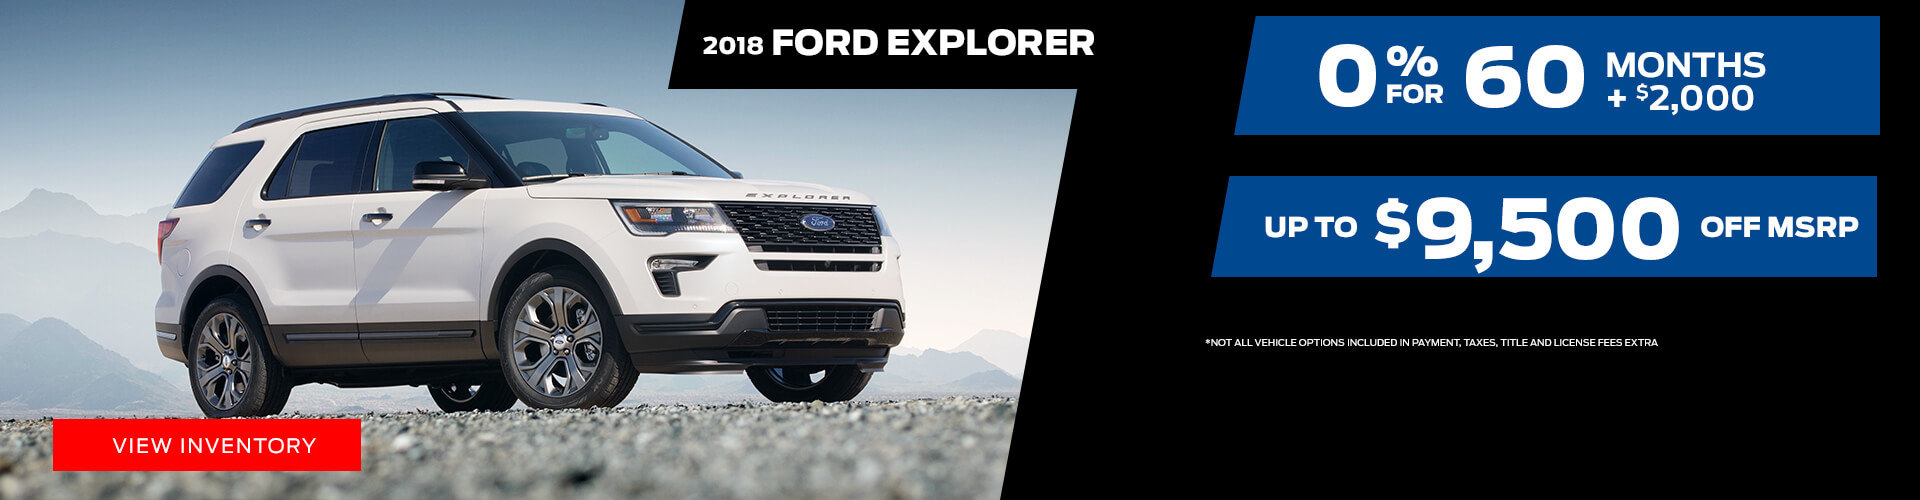 Special offer on 2018 Ford Explorer 2018 Ford Explorer Special Offer